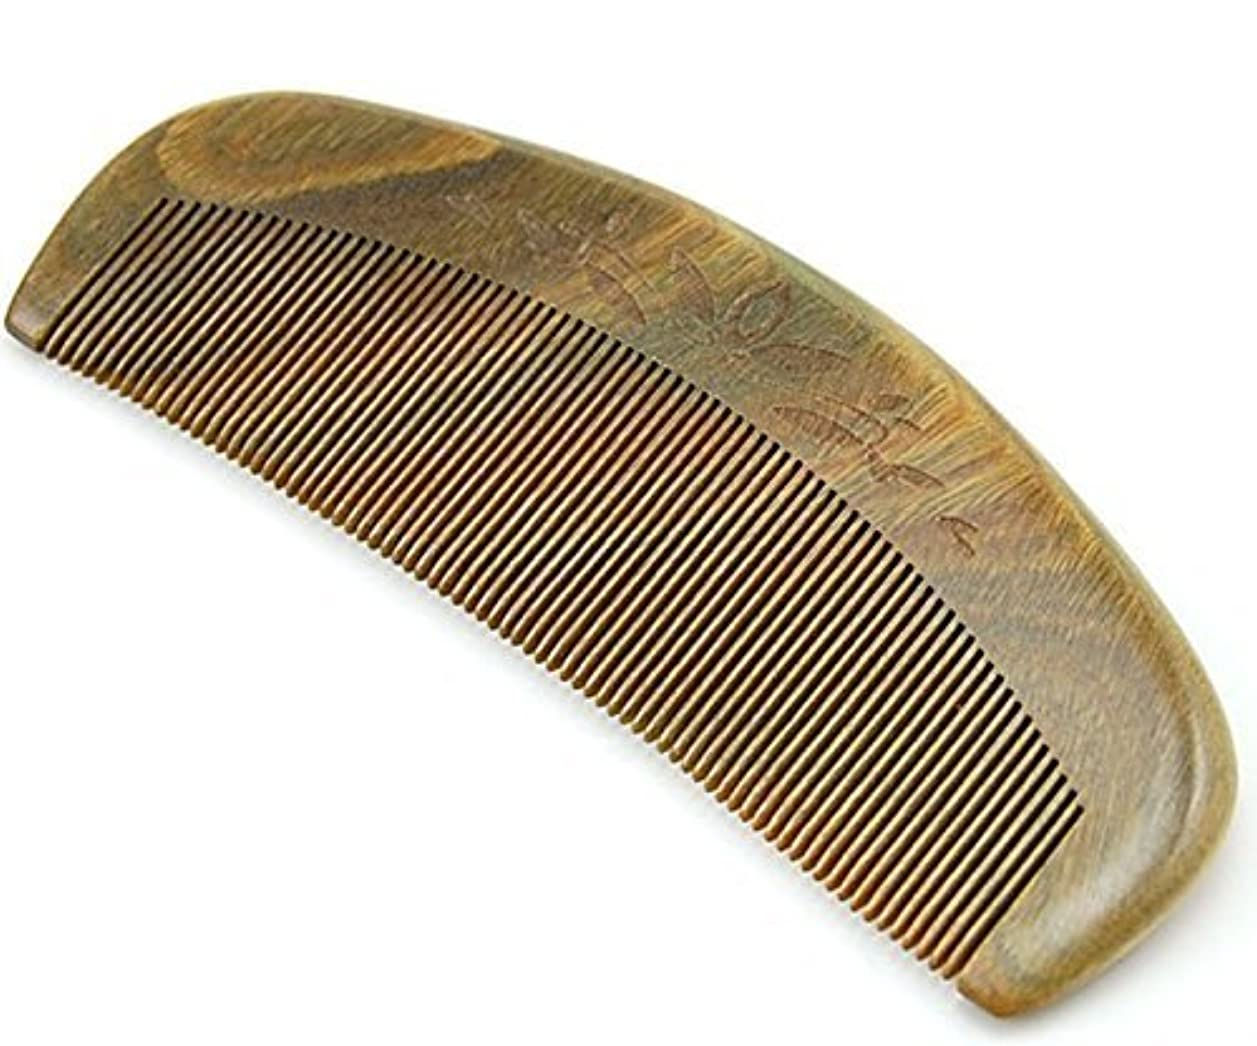 オープナーインスタント根絶するJoyo Natural Green Sandalwood Fine Tooth Comb, Anti Static Pocket Wooden Comb 5